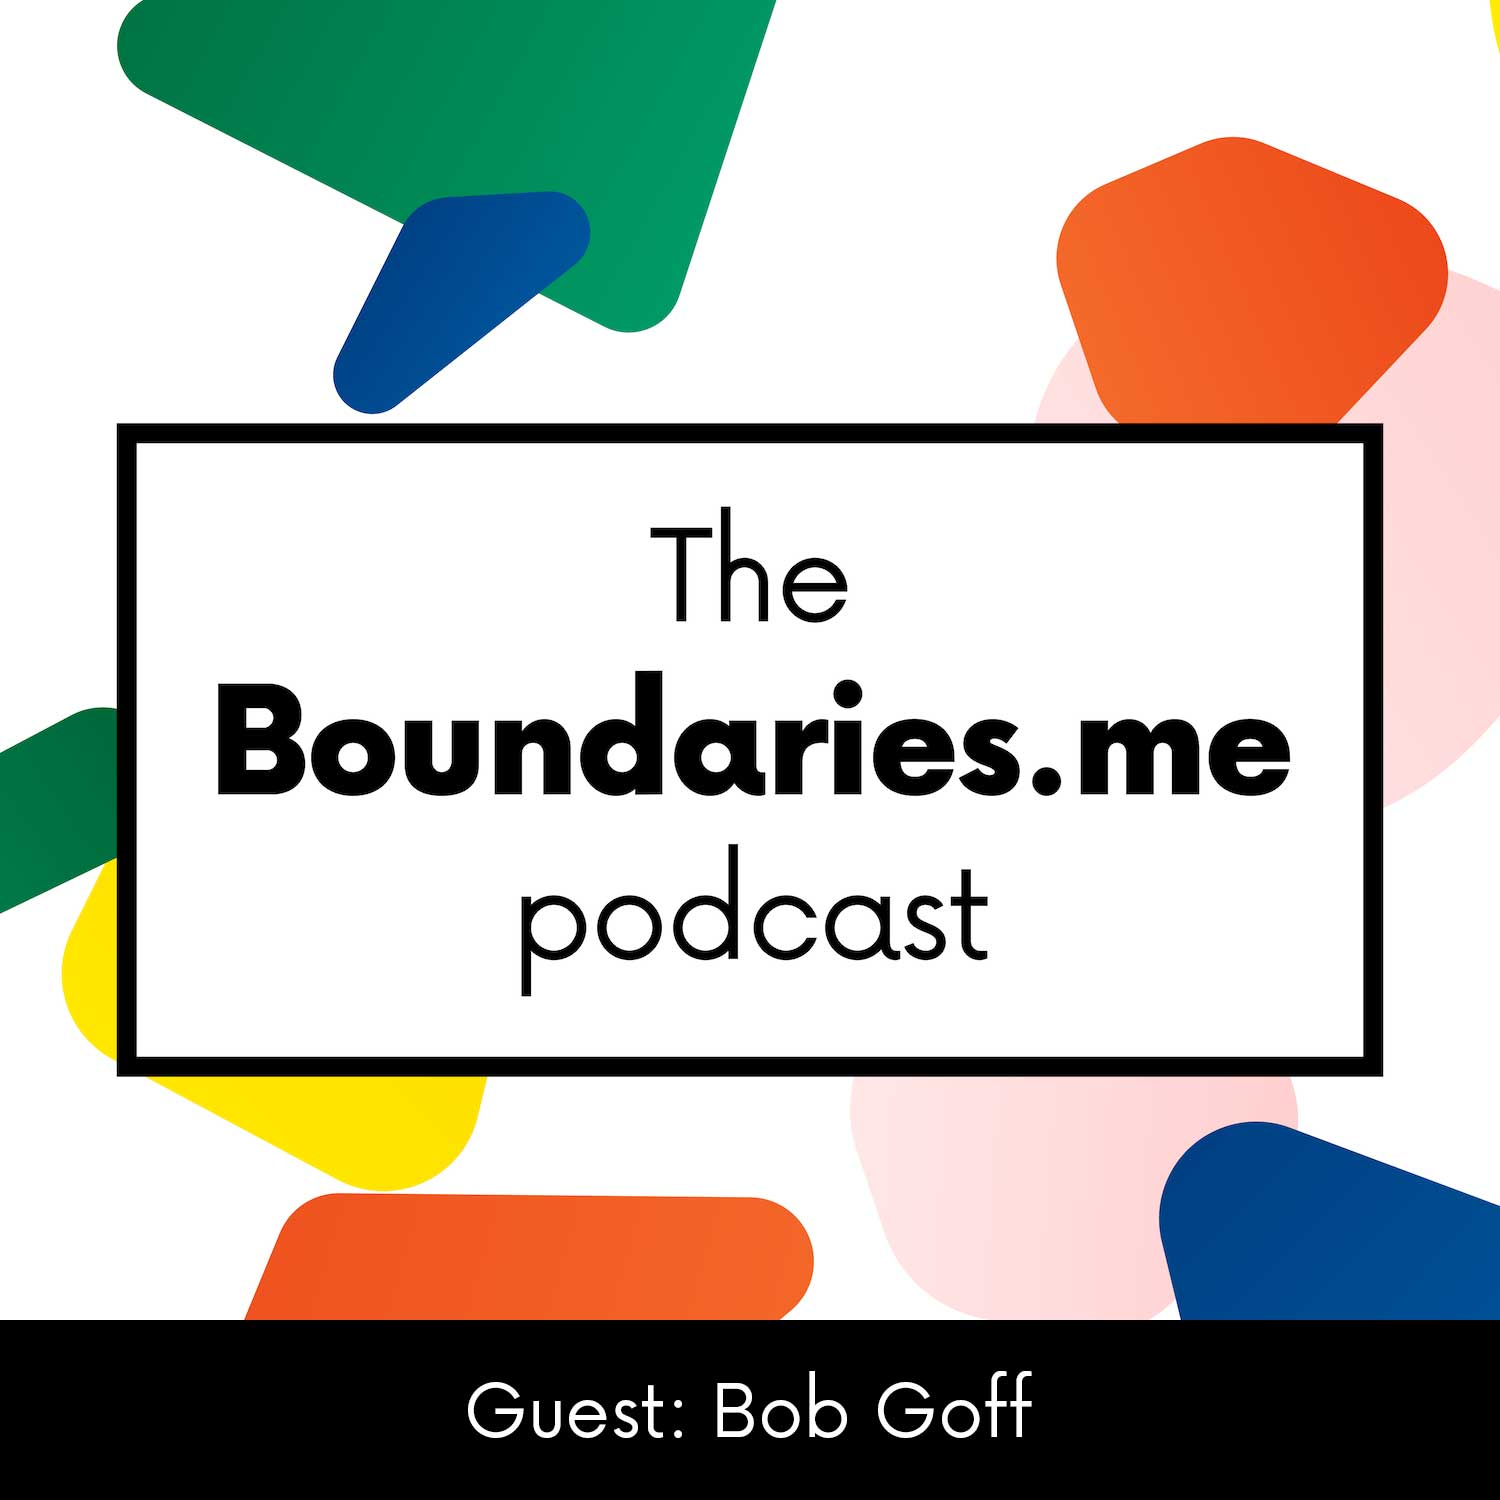 Episode 2 with Bob Goff - What Do You Want?